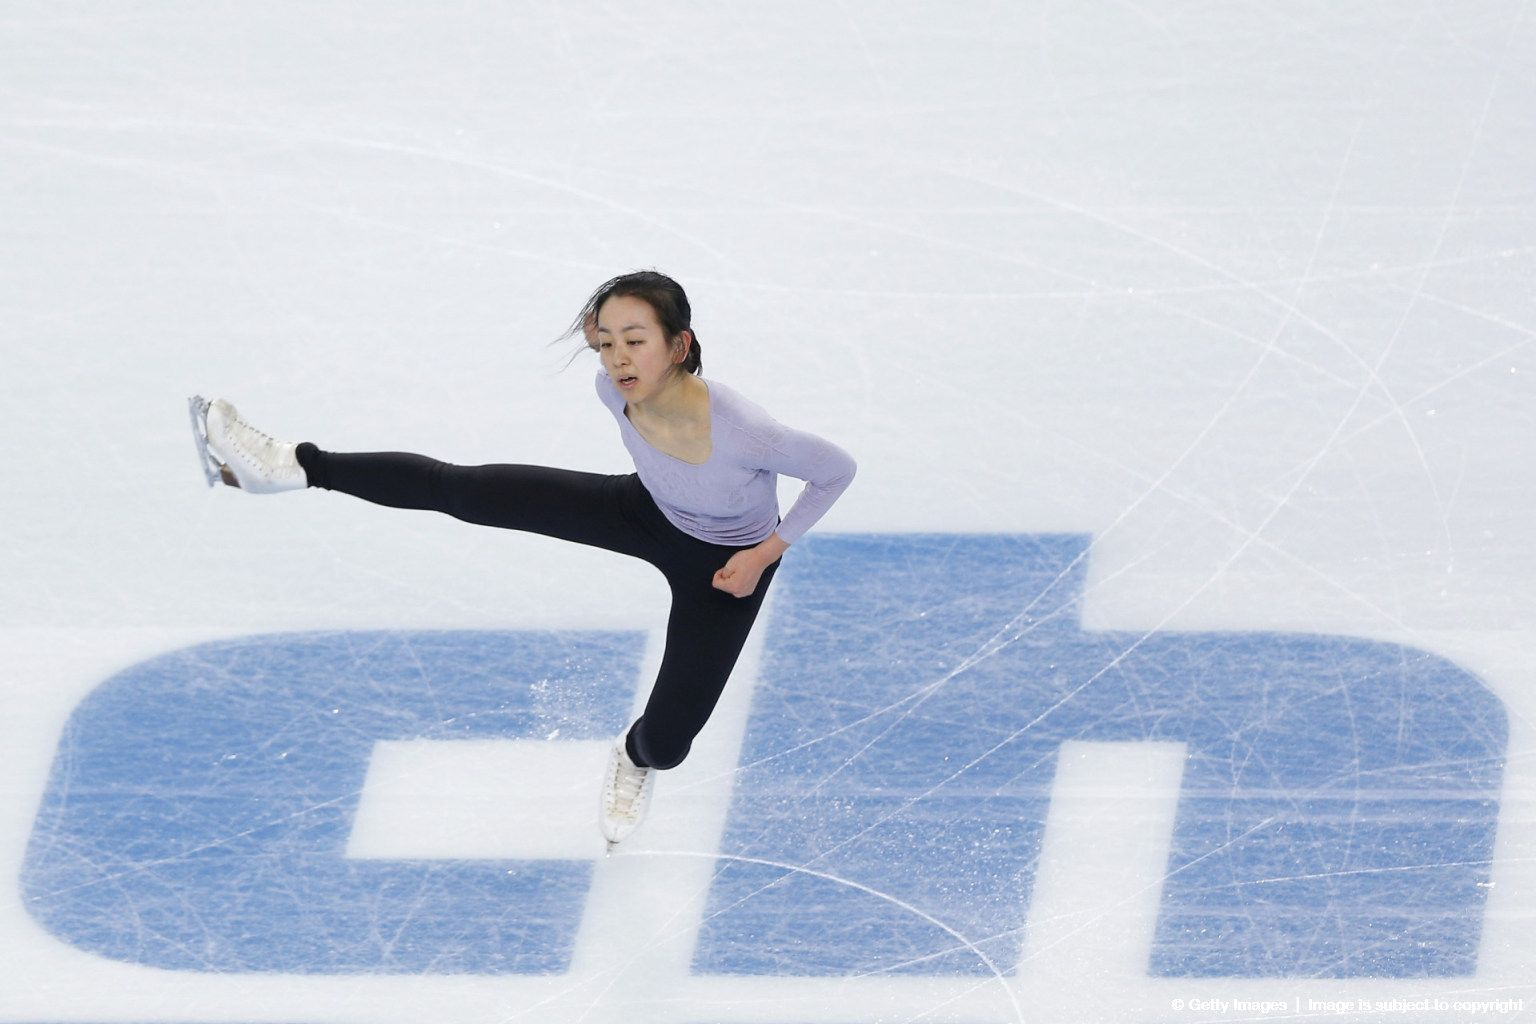 By Matthew Stockman Getty Images Sport | Figure skater Mao Asada of Japan practices at the Iceberg Skating Palace on February 6, 2014 in Sochi, Russia. (1536×1024)